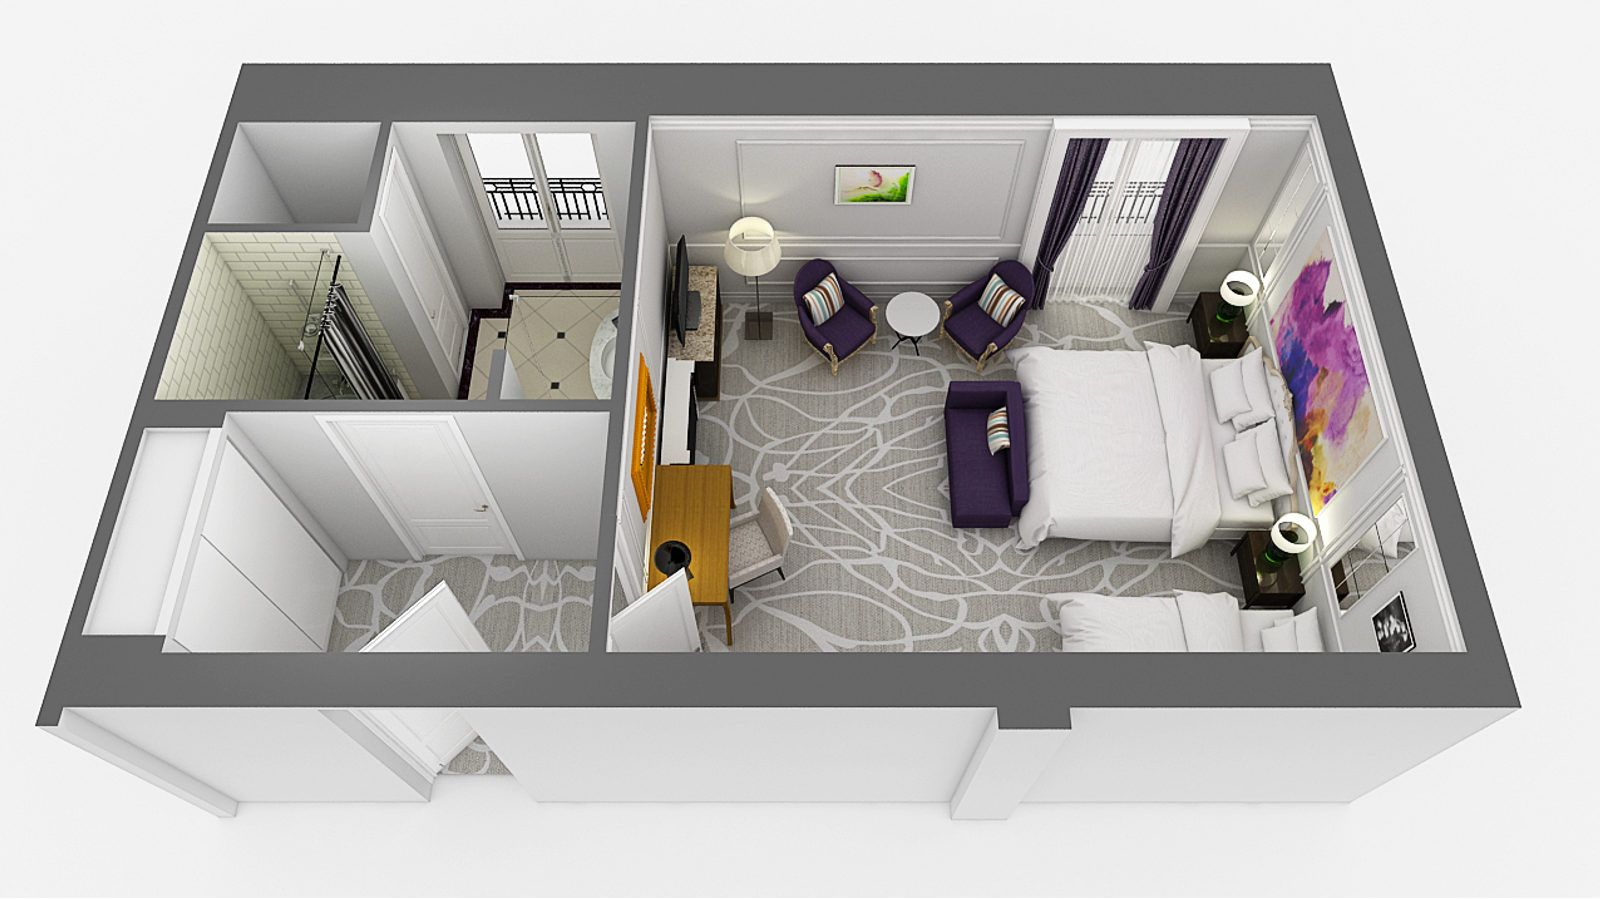 3d floor plan of the River View Suite at Hotel Maria Cristina